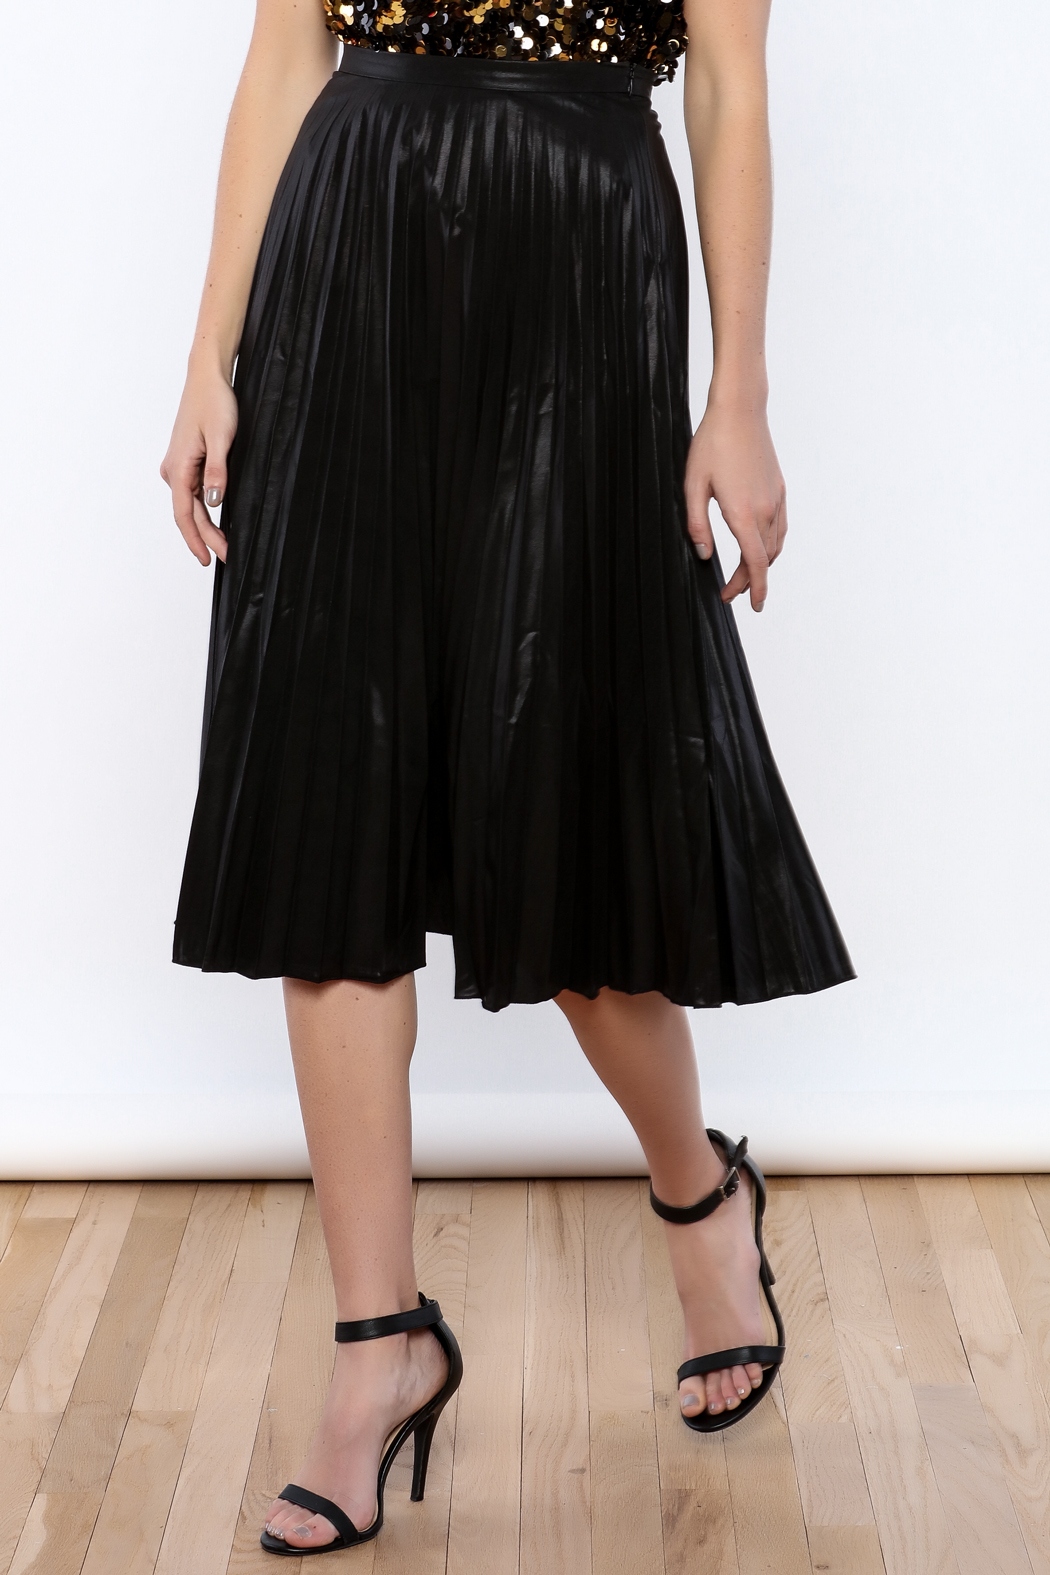 Glamorous Black Pleated Skirt From New York City By Jupe